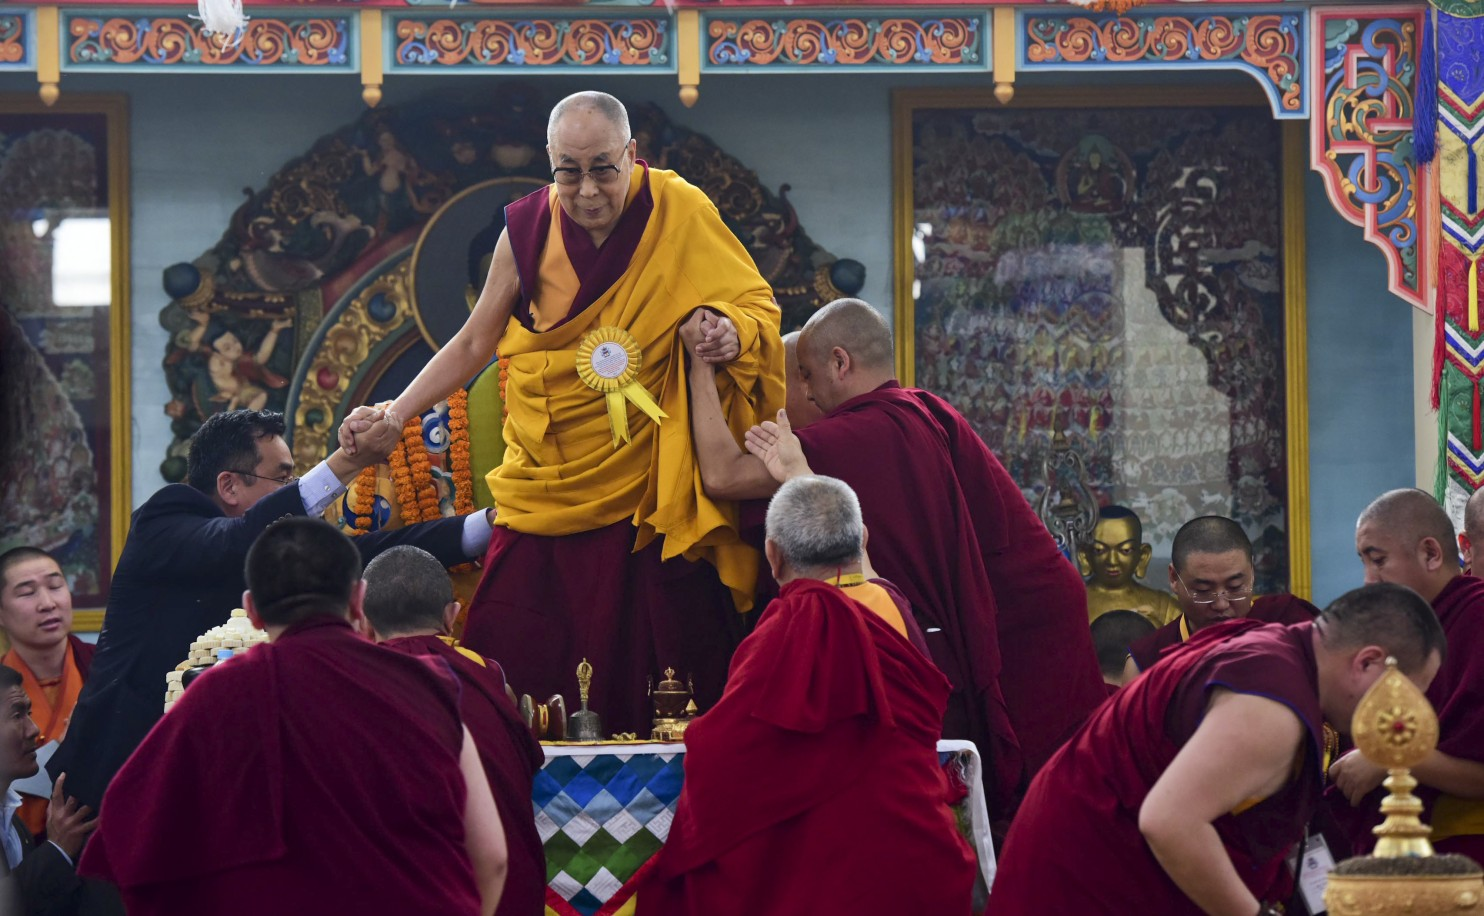 Tibetan spiritual leader the Dalai Lama is assisted by his aides as he prepares to perform rituals during the inauguration of a Mongolian Buddhist temple in Bodh Gaya, India, Jan. 9, 2017. (AP Photo/Manish Bhandari)